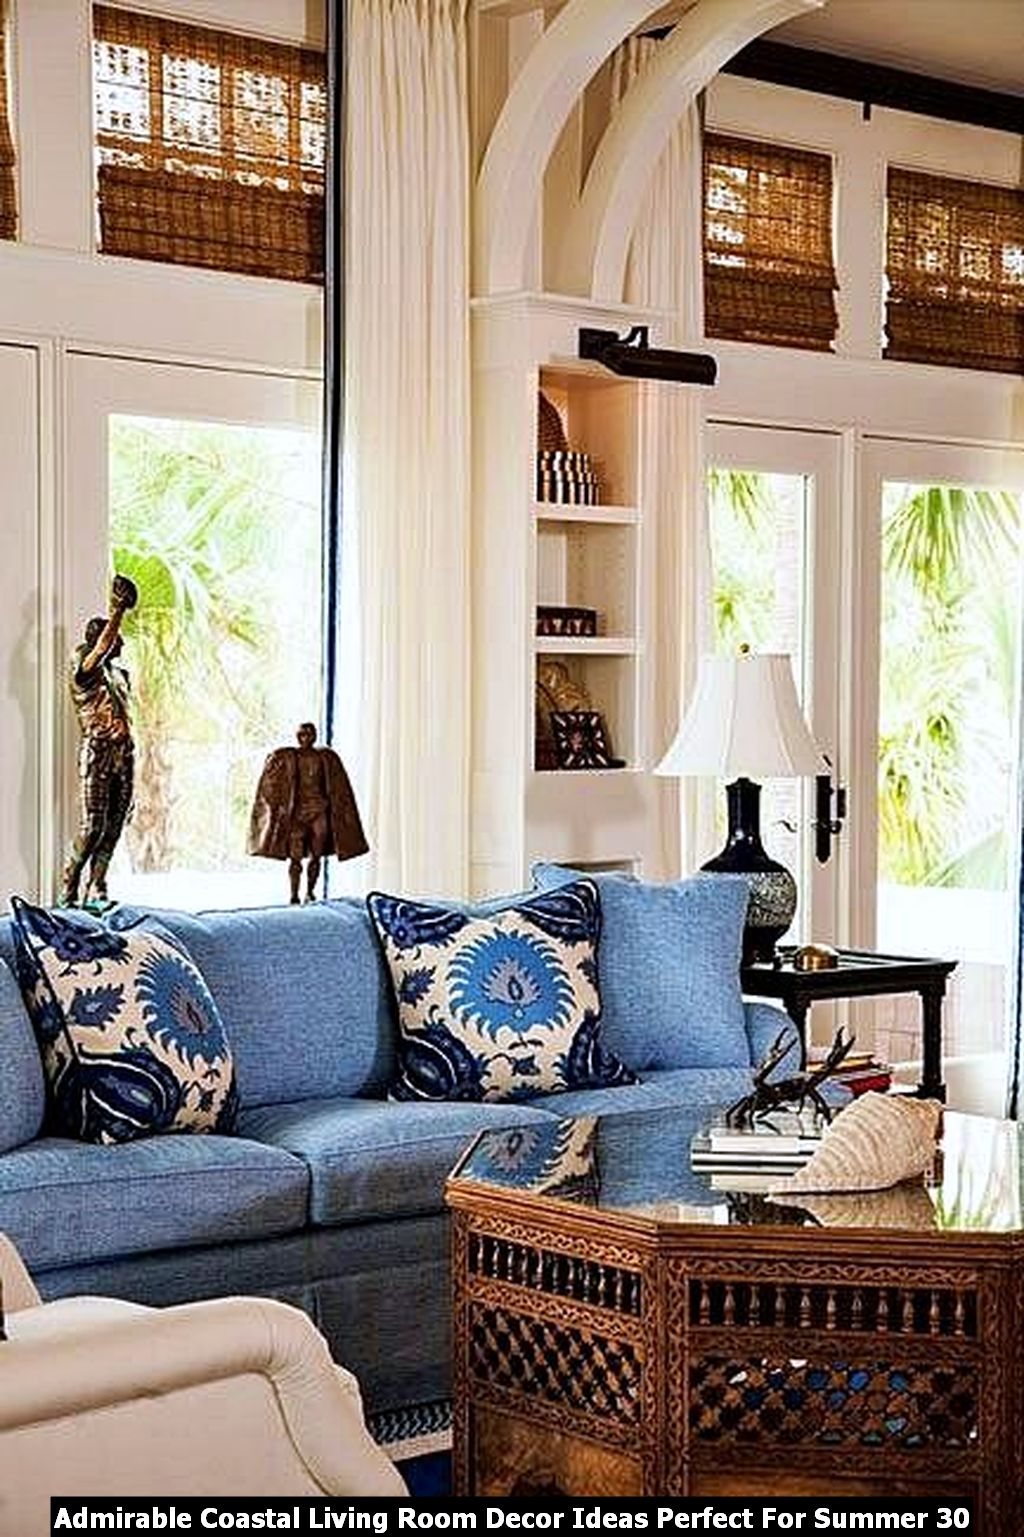 Admirable Coastal Living Room Decor Ideas Perfect For Summer 30